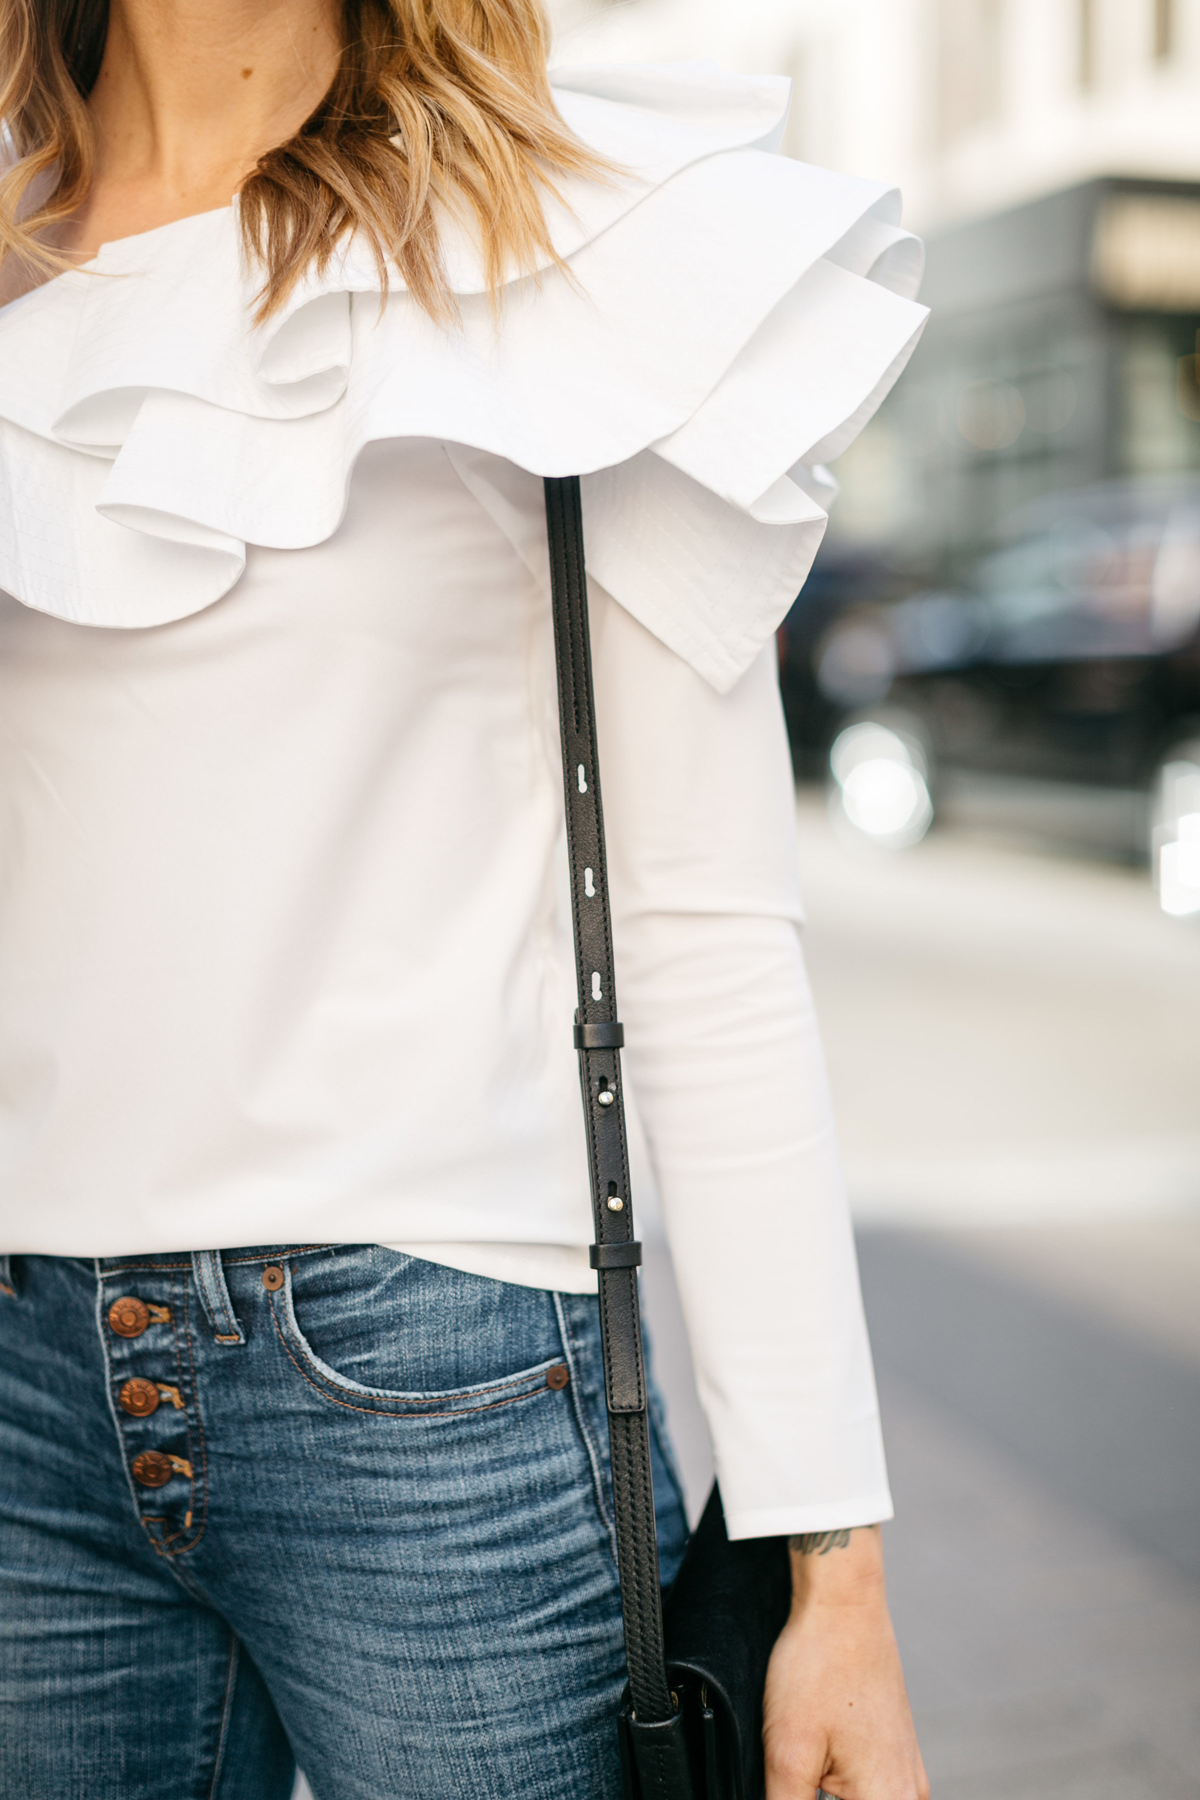 White One Shoulder Top, Button Fly Jeans, Fashion Jackson